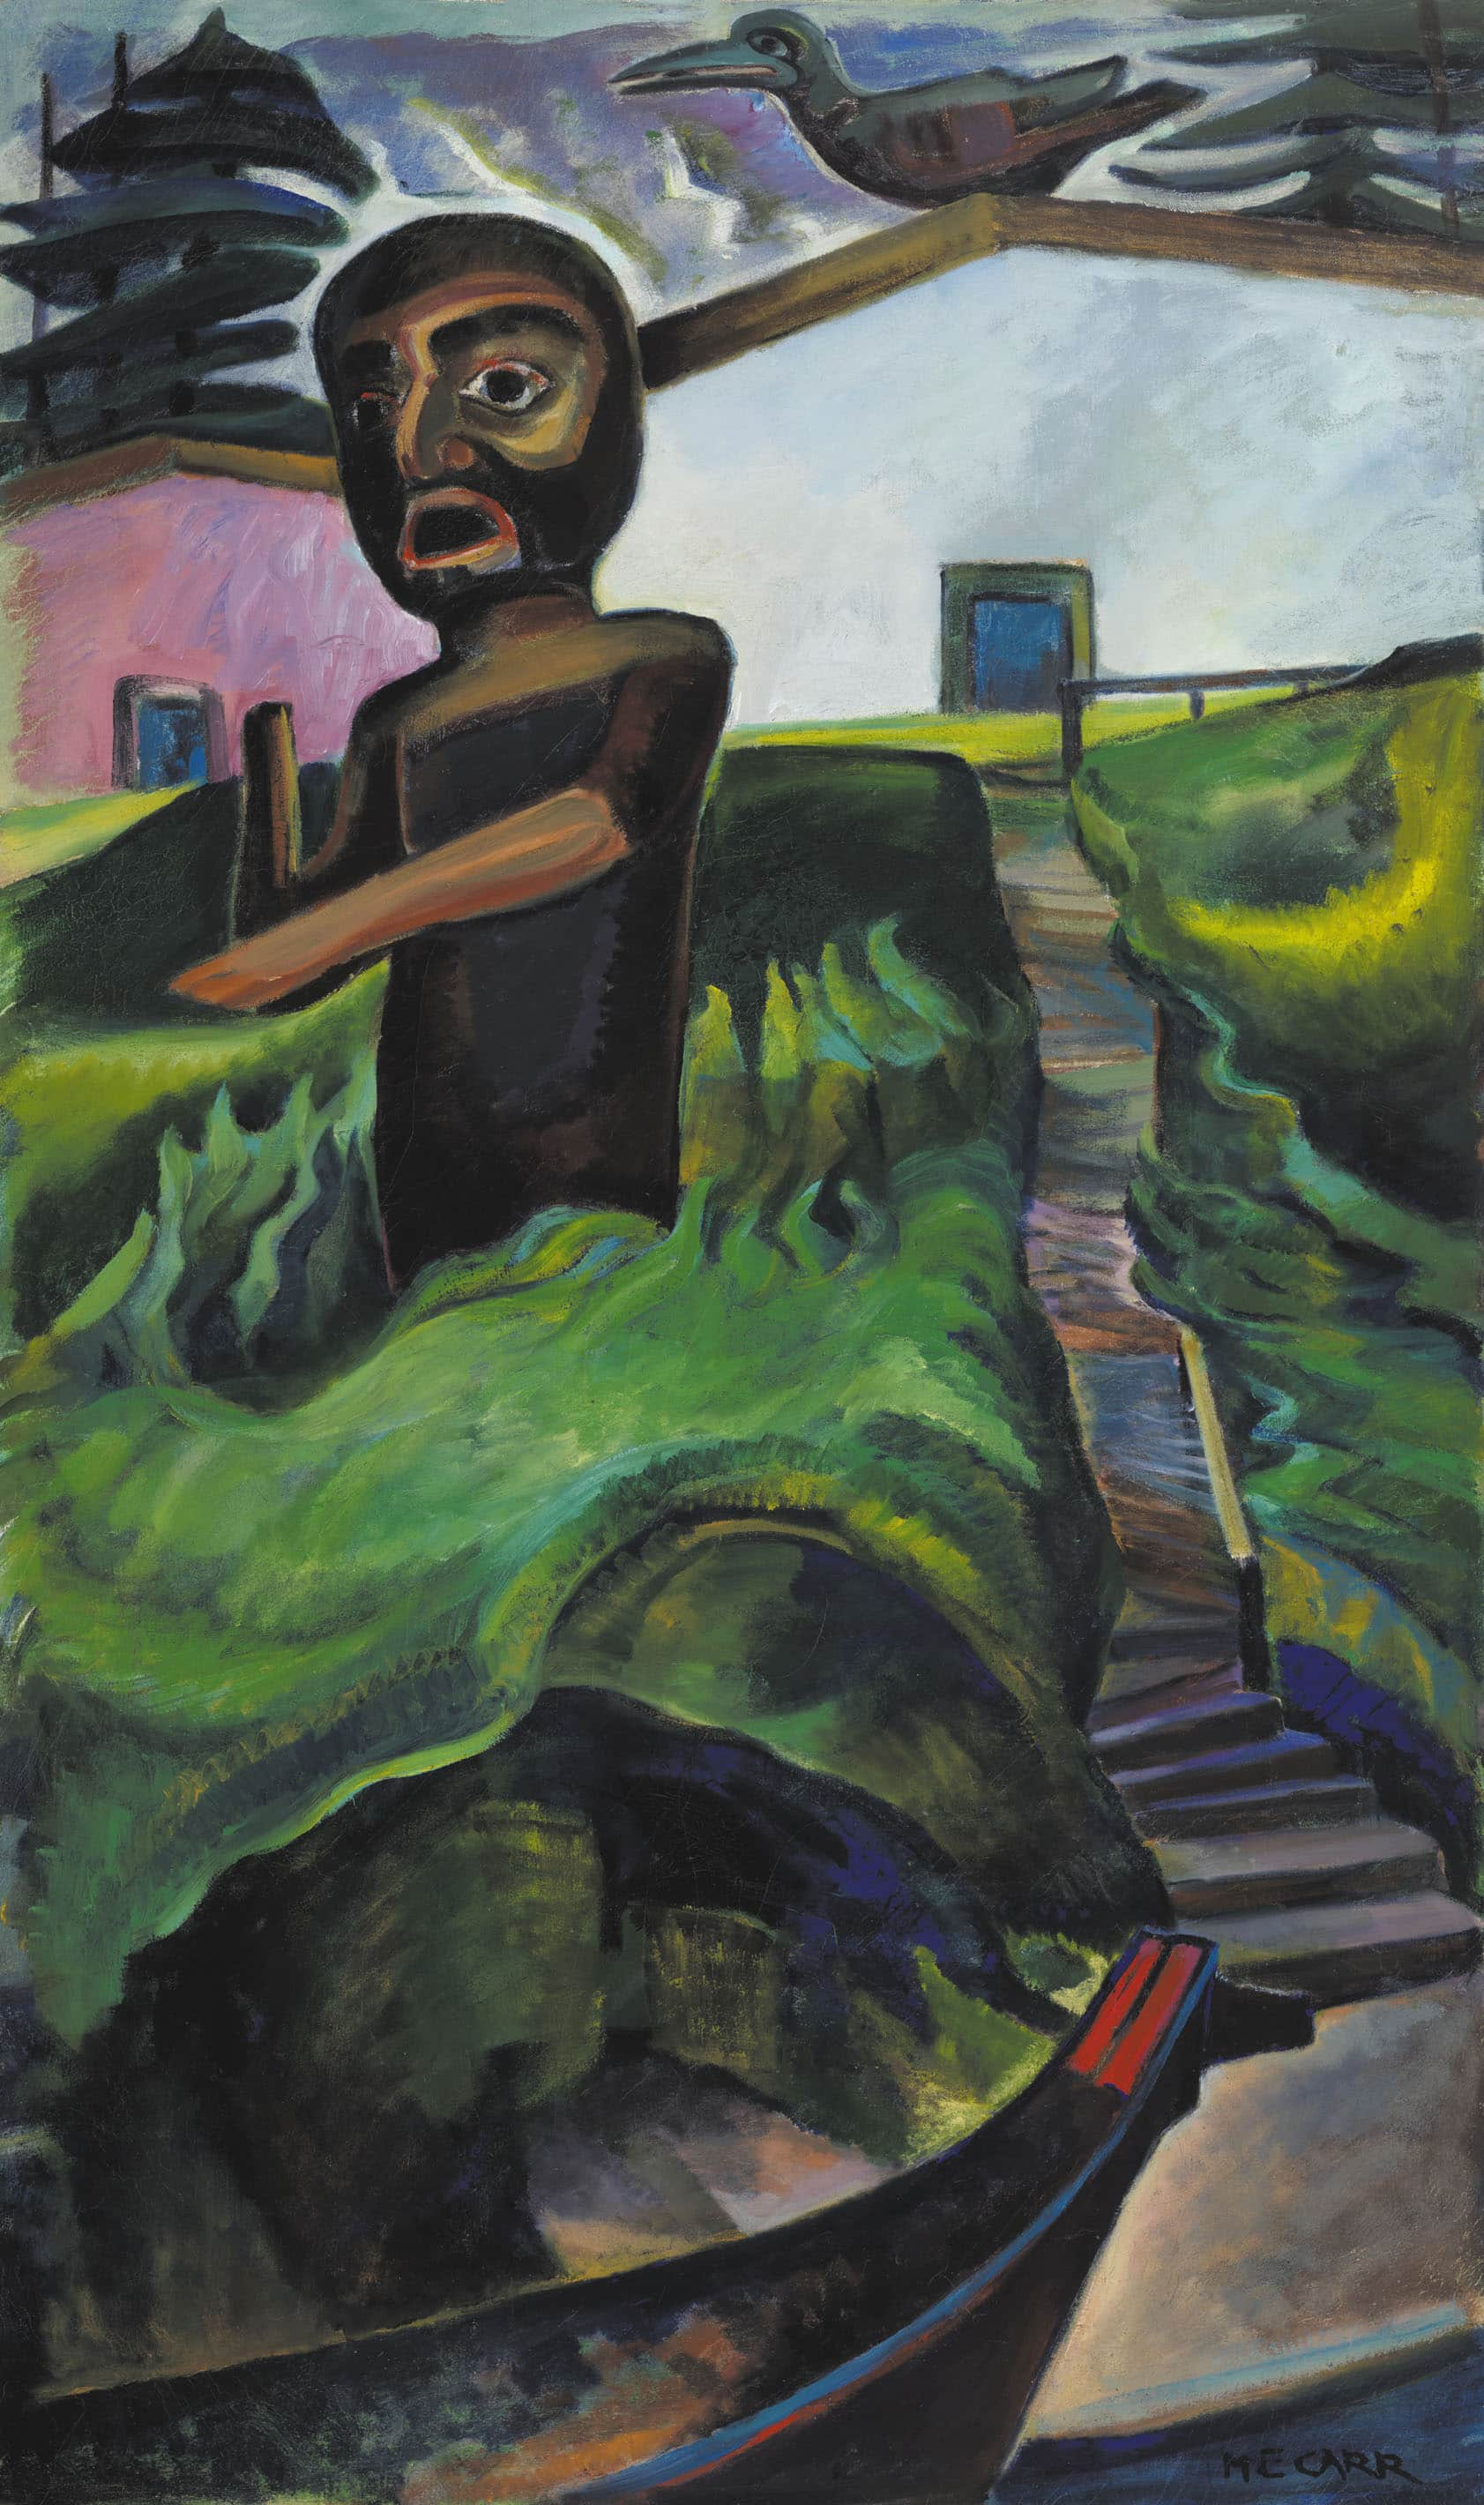 Emily Carr: The Crazy Stair (aka The Crooked Staircase)